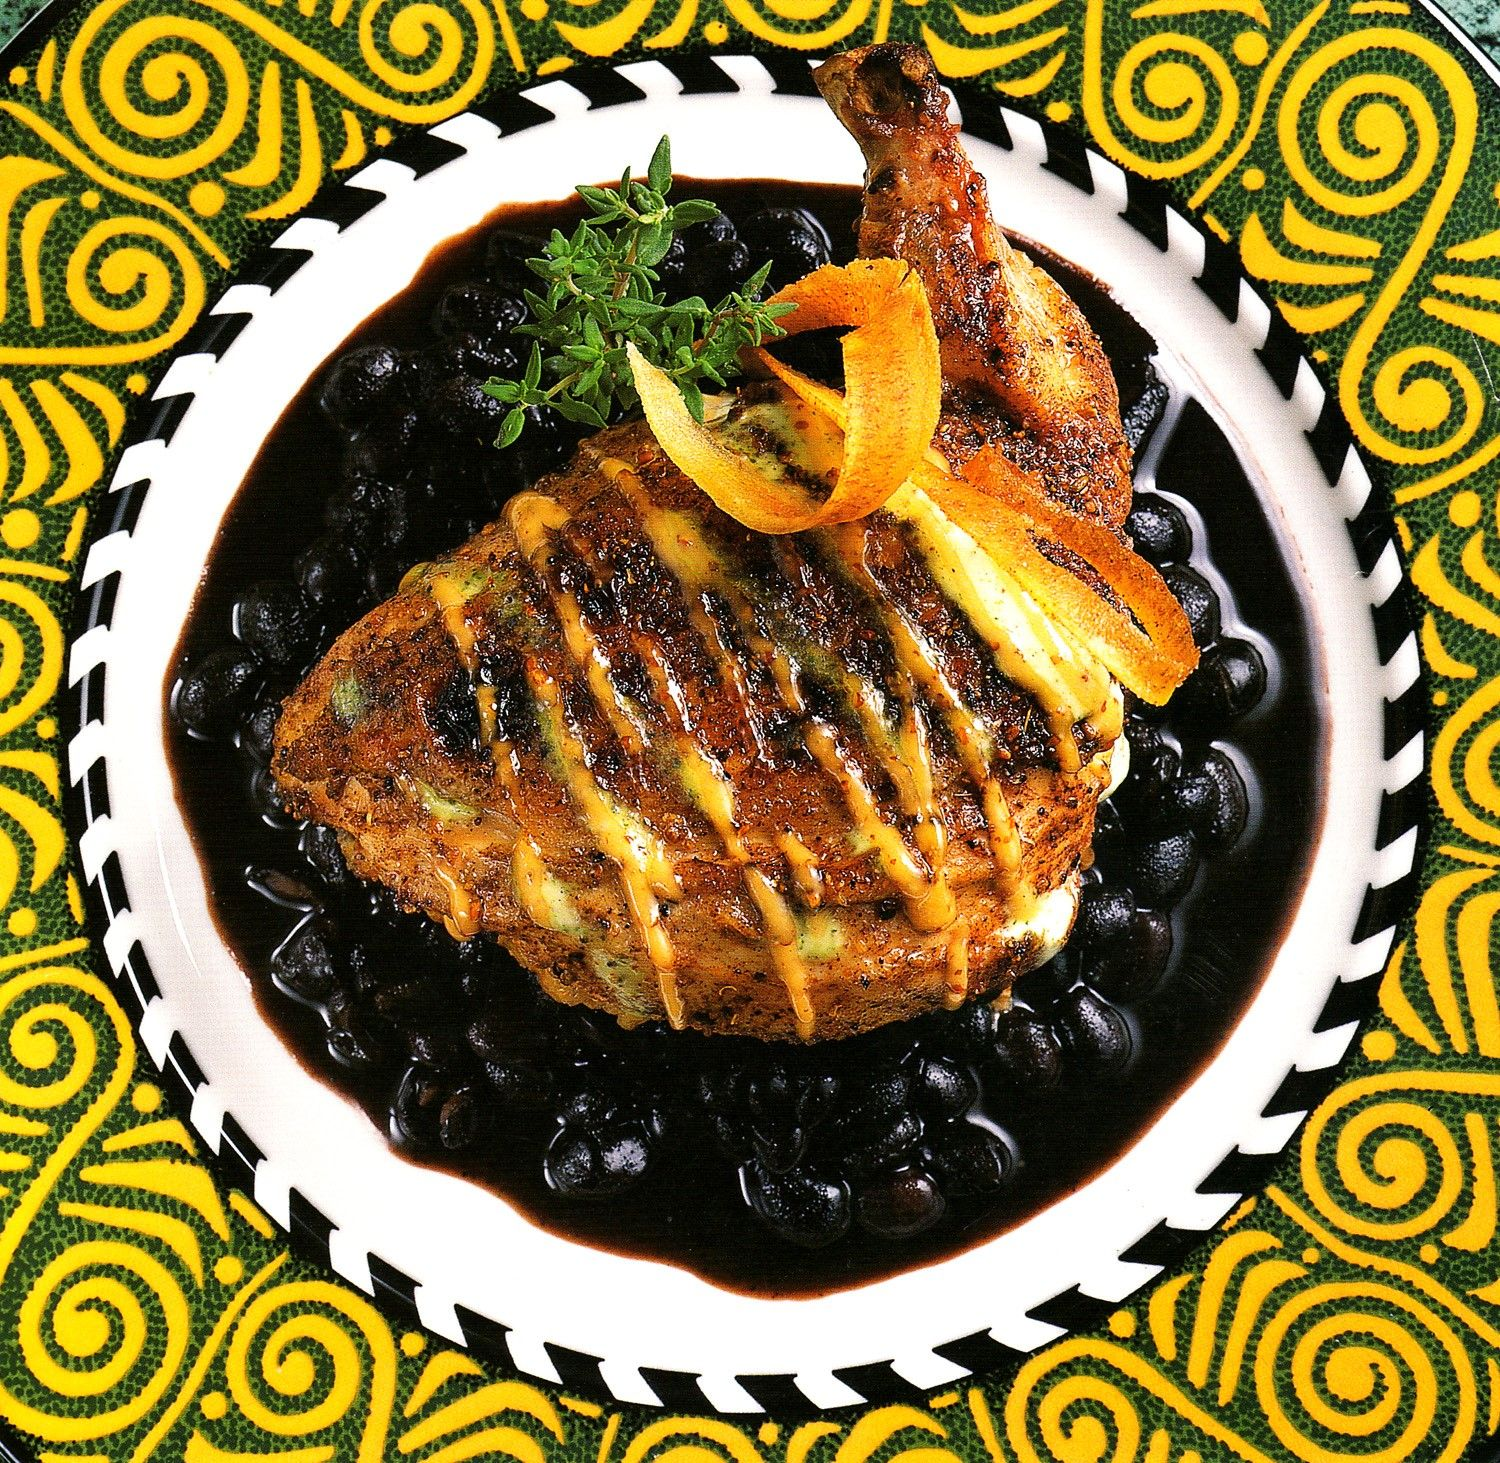 #Chicken Mofongo?  Yes please!  Sweet Plantain Stuffing ~ 'Very' Black Beans ~ Pineapple-Papaya-Cachaca Chutney